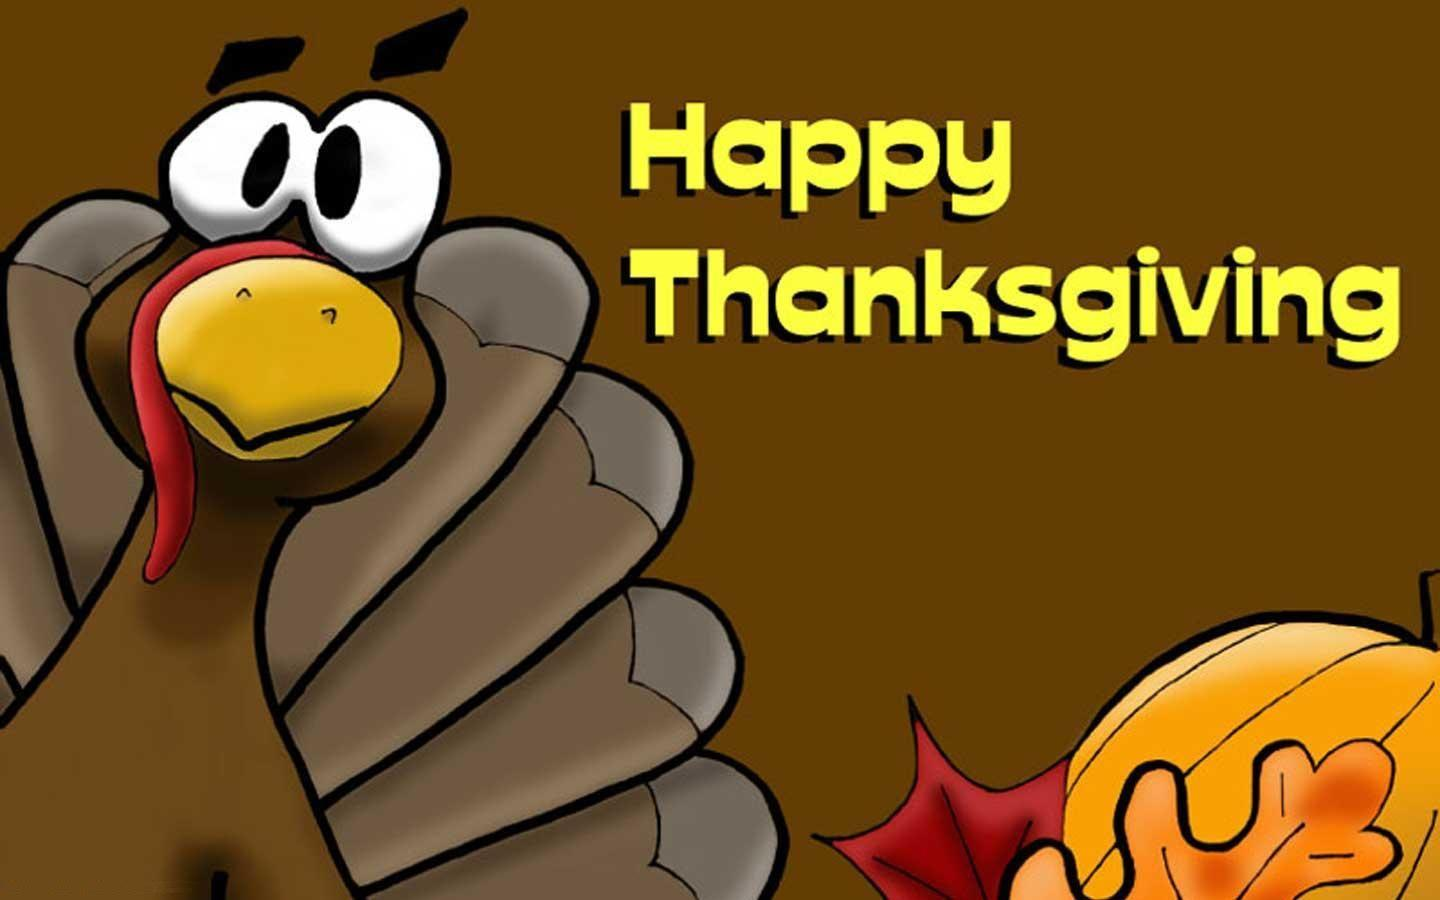 Funny^ Happy Thanksgiving Turkey Image, Pictures, Coloring Page